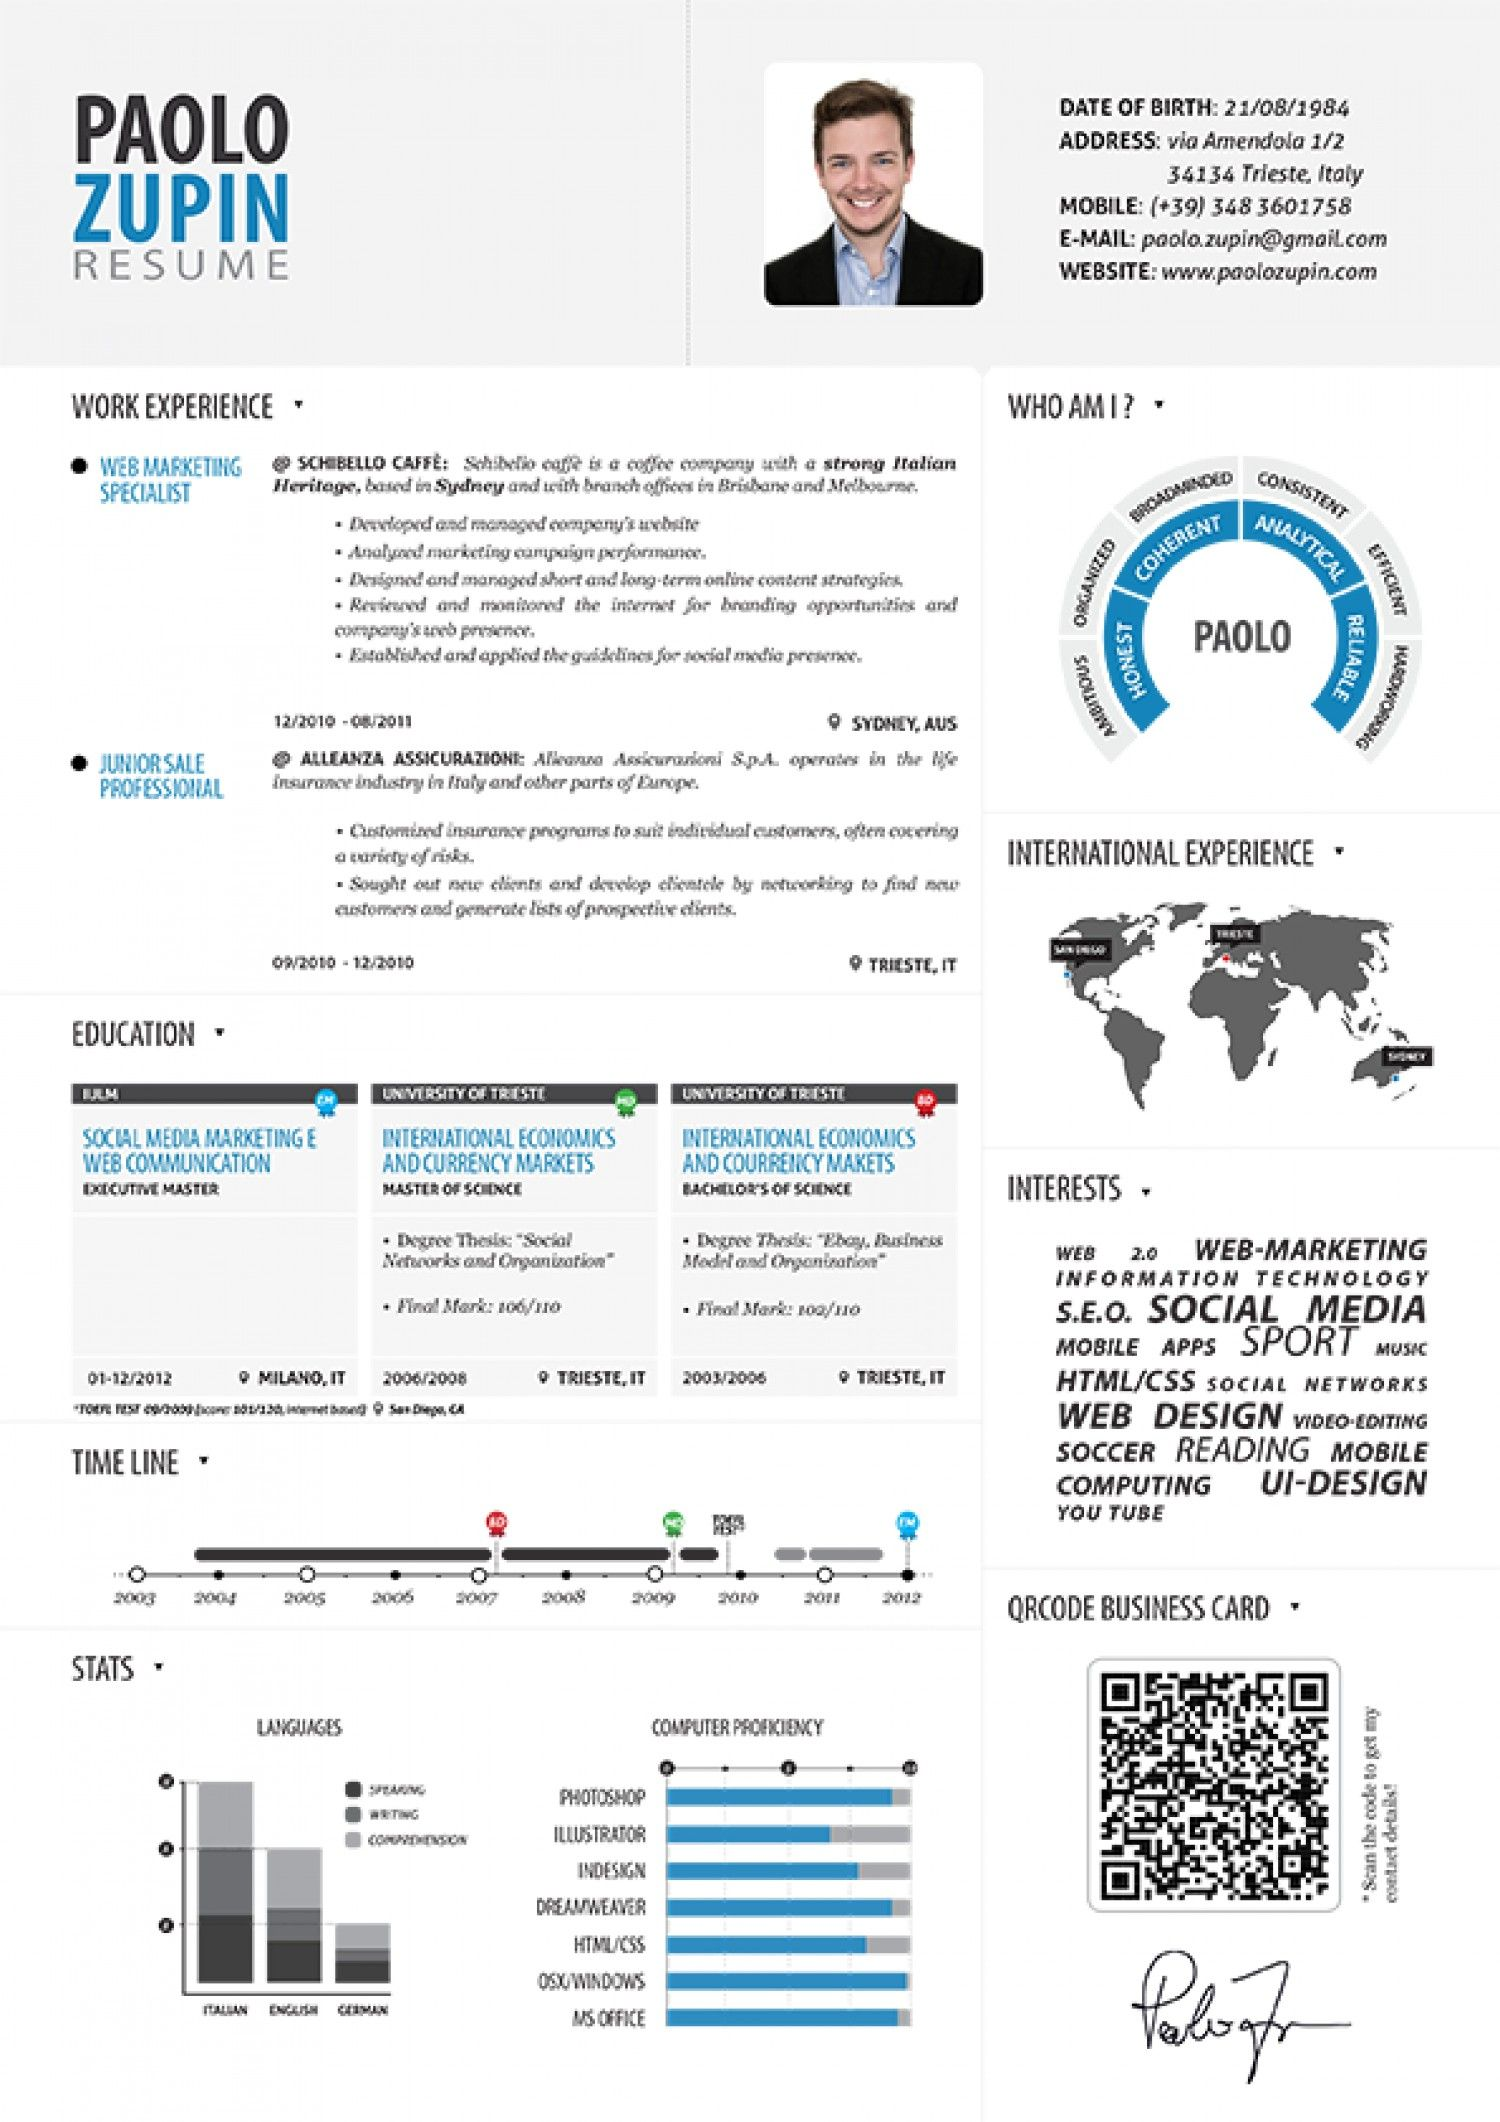 Opposenewapstandardsus  Stunning  Images About Infographic Resume On Pinterest  Infographic  With Hot  Images About Infographic Resume On Pinterest  Infographic Resume Resume And Business Resume With Enchanting Soccer Resume Also Resume Profile Summary In Addition Resume Gpa And Summary For Resume Examples As Well As Engineering Student Resume Additionally Web Design Resume From Pinterestcom With Opposenewapstandardsus  Hot  Images About Infographic Resume On Pinterest  Infographic  With Enchanting  Images About Infographic Resume On Pinterest  Infographic Resume Resume And Business Resume And Stunning Soccer Resume Also Resume Profile Summary In Addition Resume Gpa From Pinterestcom